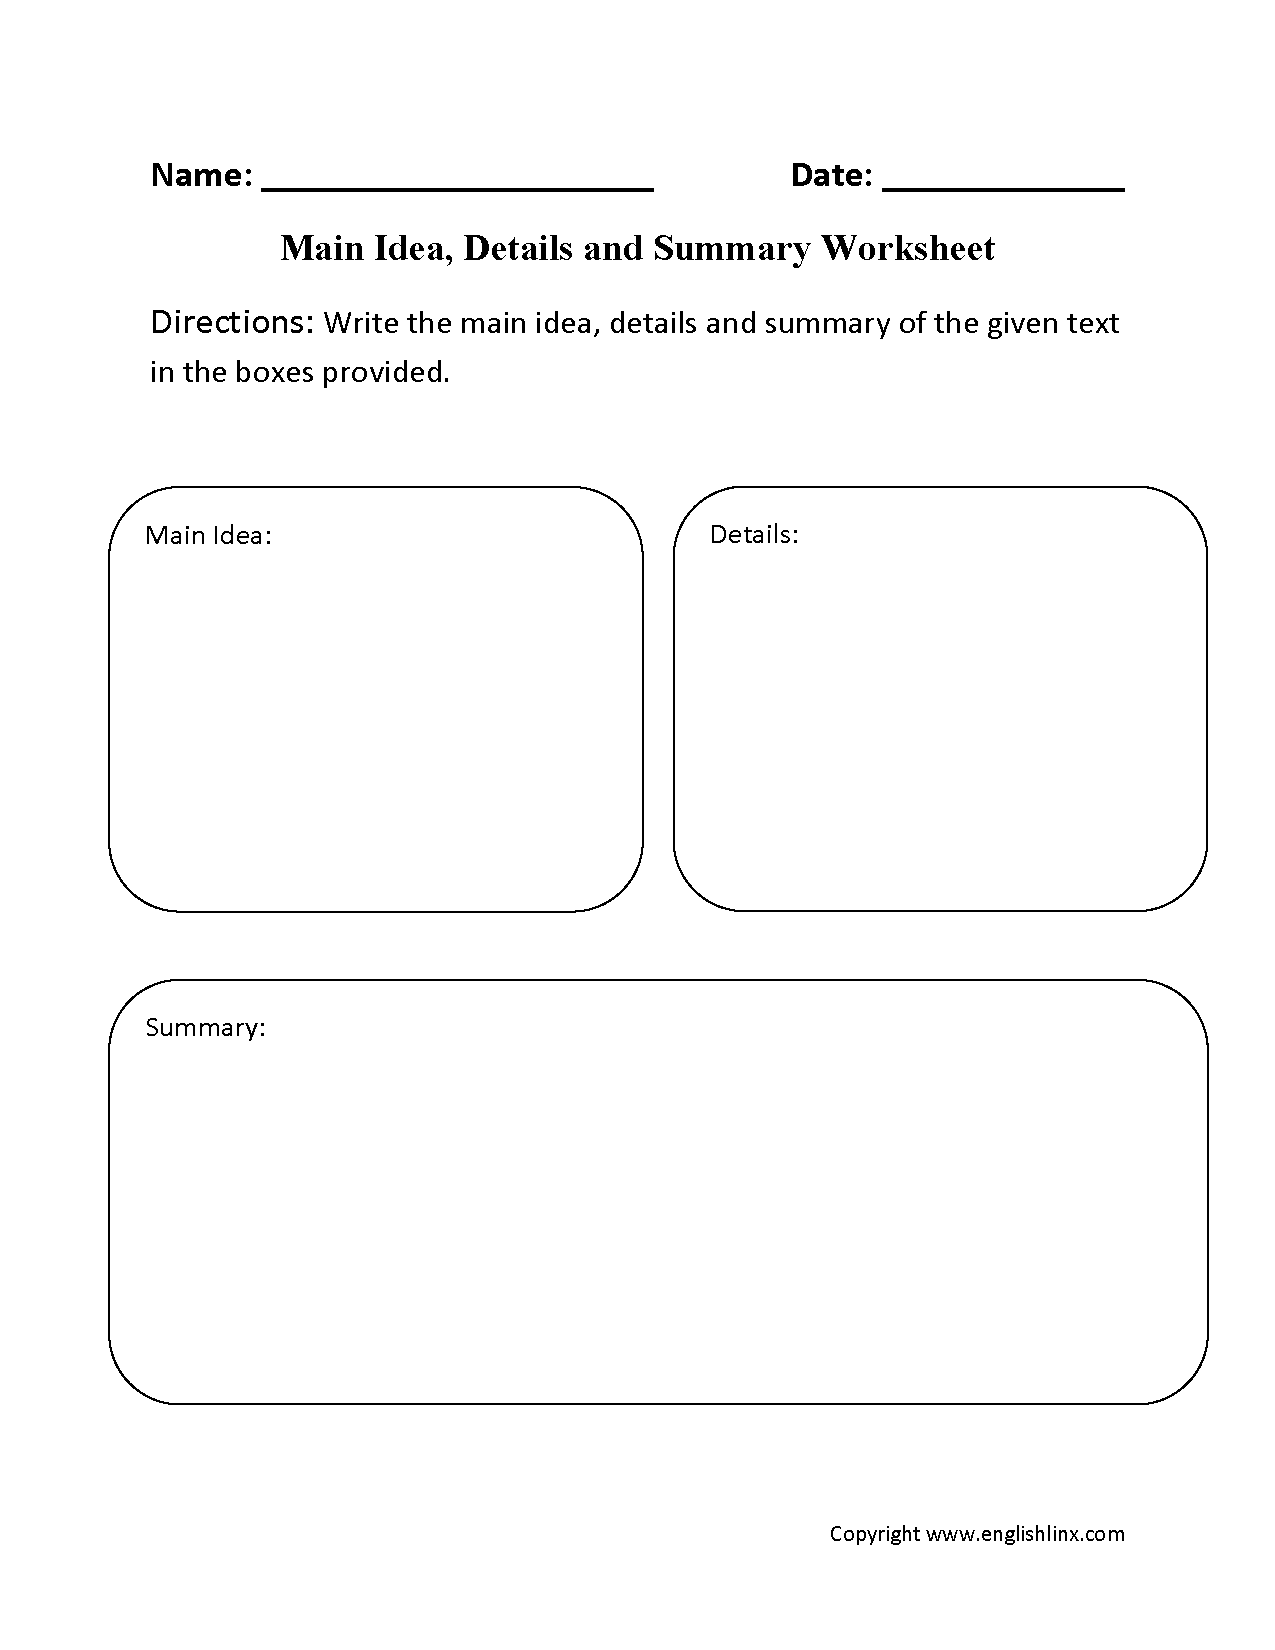 29 Comprehensive Main Idea Worksheets